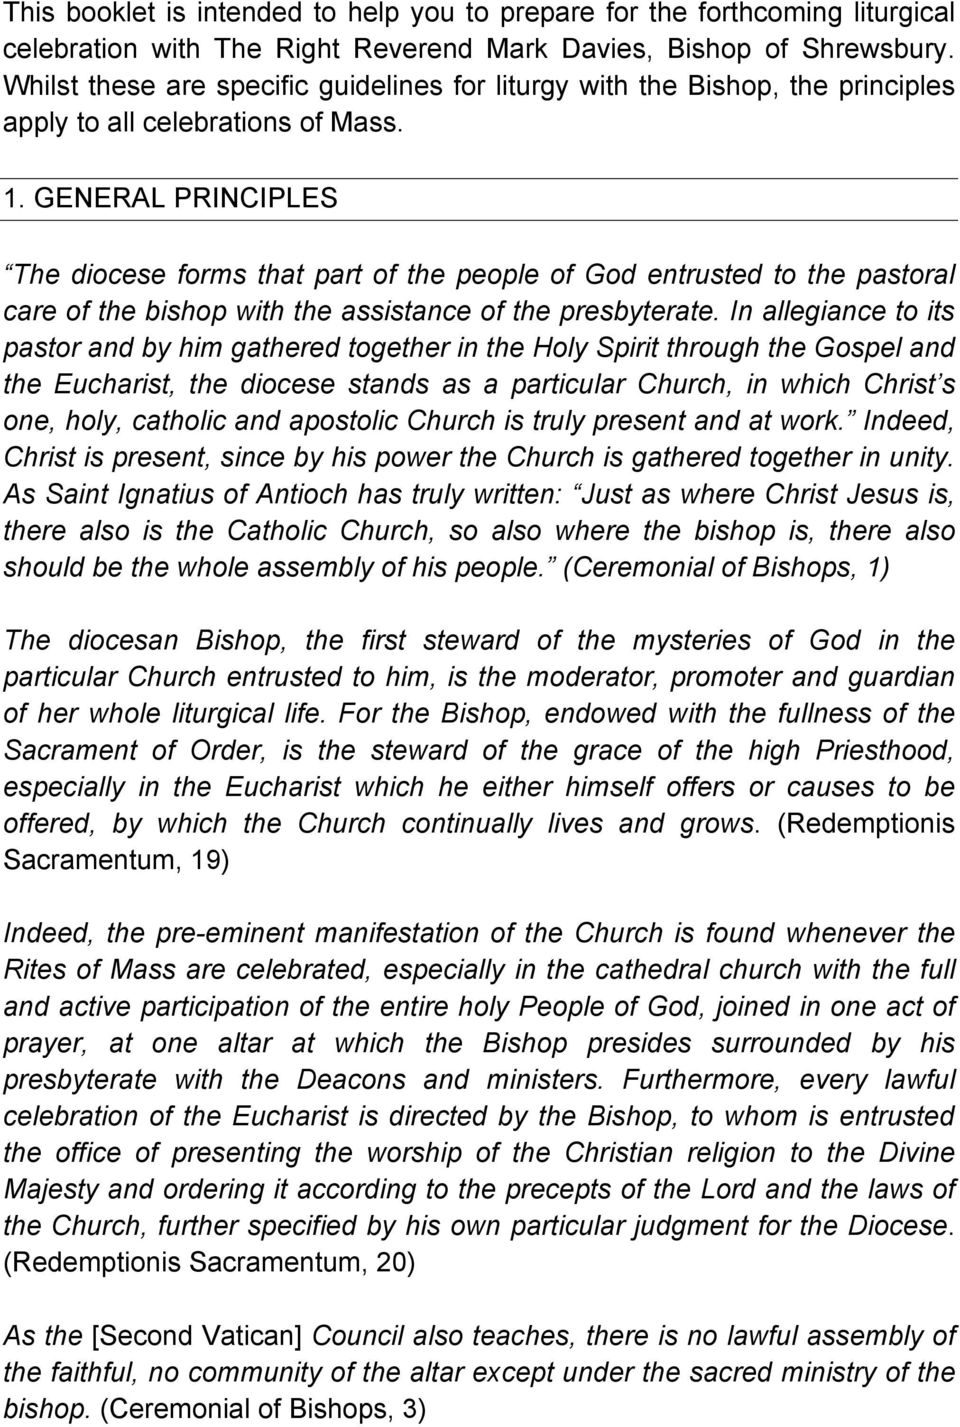 GENERAL PRINCIPLES The diocese forms that part of the people of God entrusted to the pastoral care of the bishop with the assistance of the presbyterate.